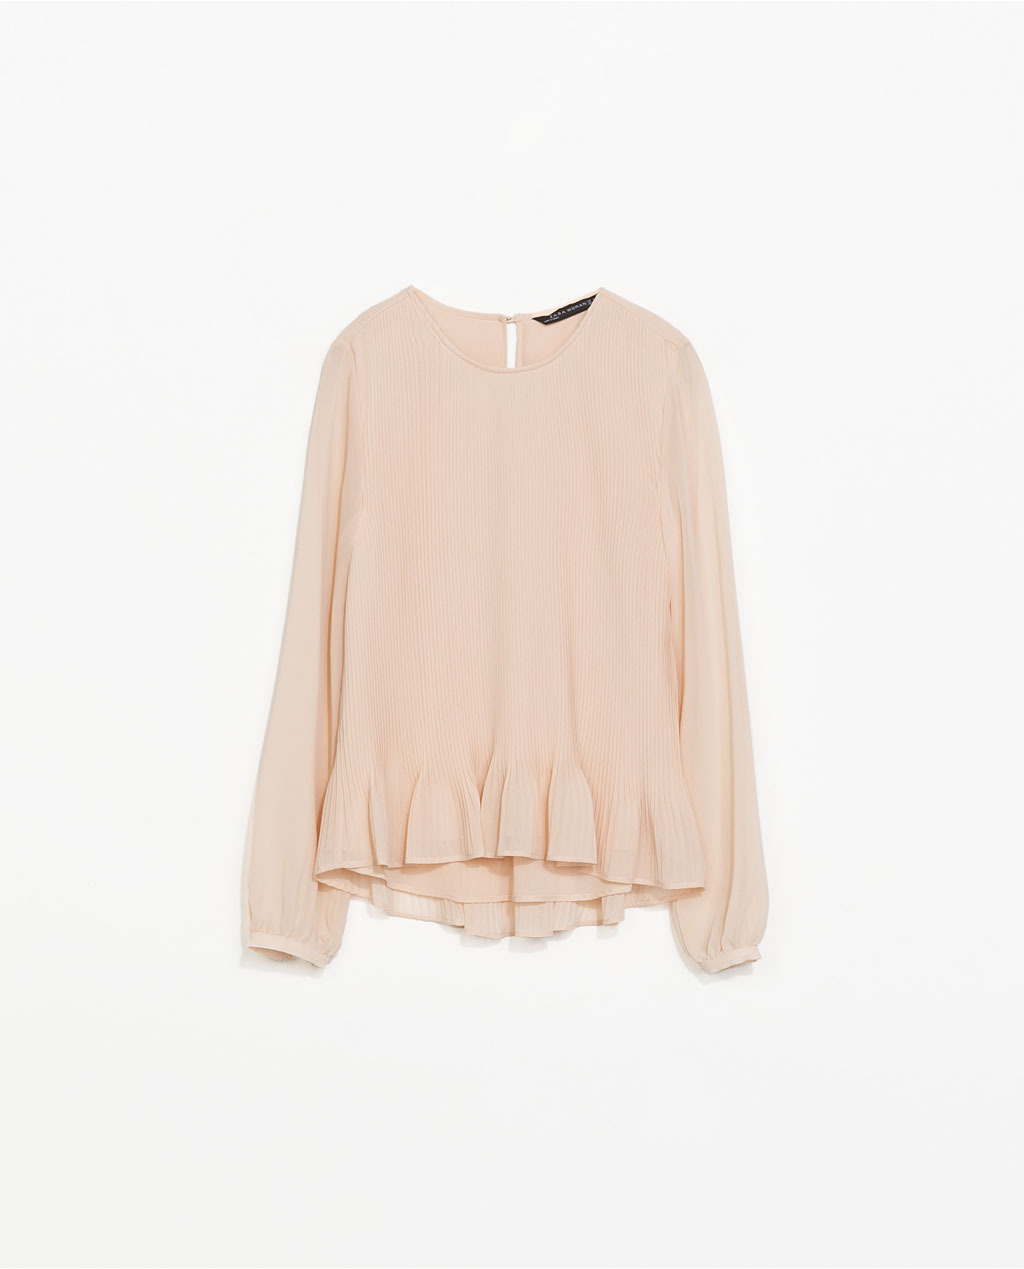 Fine Pleated Blouse - neckline: round neck; pattern: plain; sleeve style: balloon; style: blouse; predominant colour: blush; occasions: casual, evening, creative work; length: standard; fibres: polyester/polyamide - 100%; fit: loose; sleeve length: long sleeve; texture group: sheer fabrics/chiffon/organza etc.; bust detail: tiers/frills/bulky drapes/pleats; hip detail: ruffles/tiers/tie detail at hip; pattern type: fabric; trends: sorbet shades; season: s/s 2014